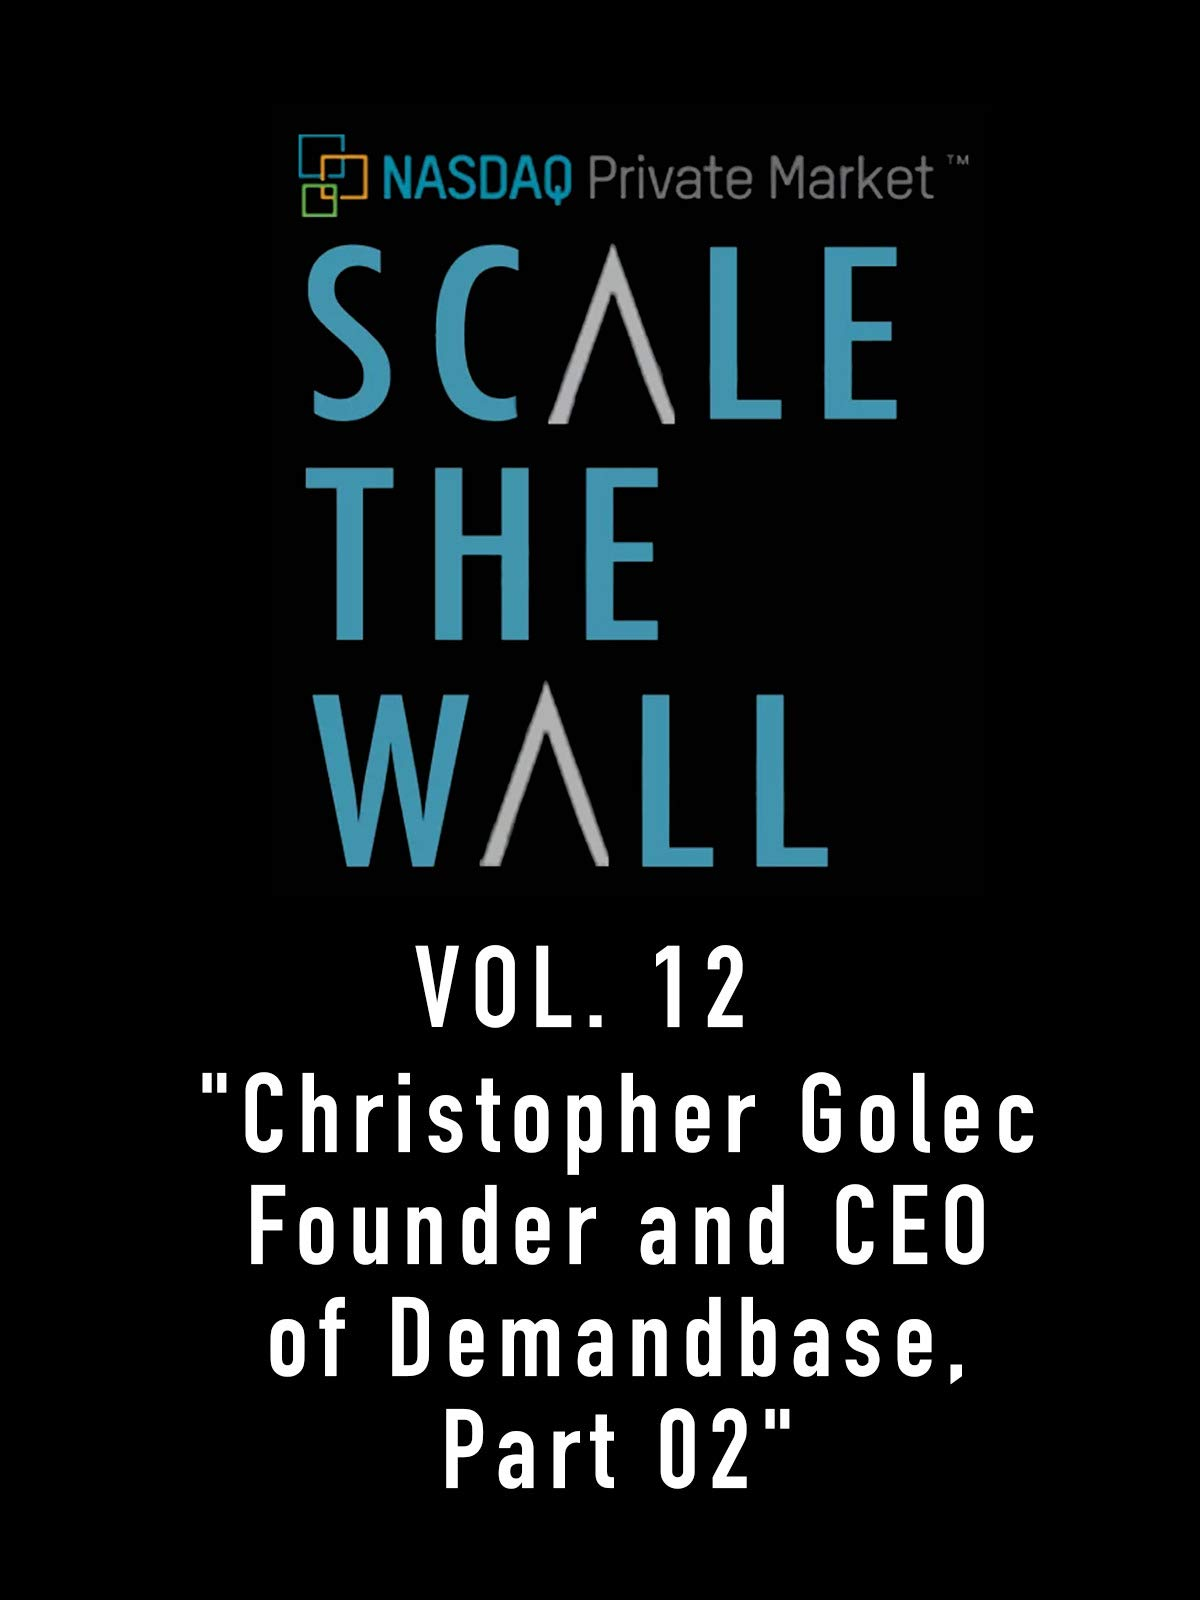 Scale The Wall Vol. 12 Christopher Golec Founder and CEO of Demandbase, Part 02